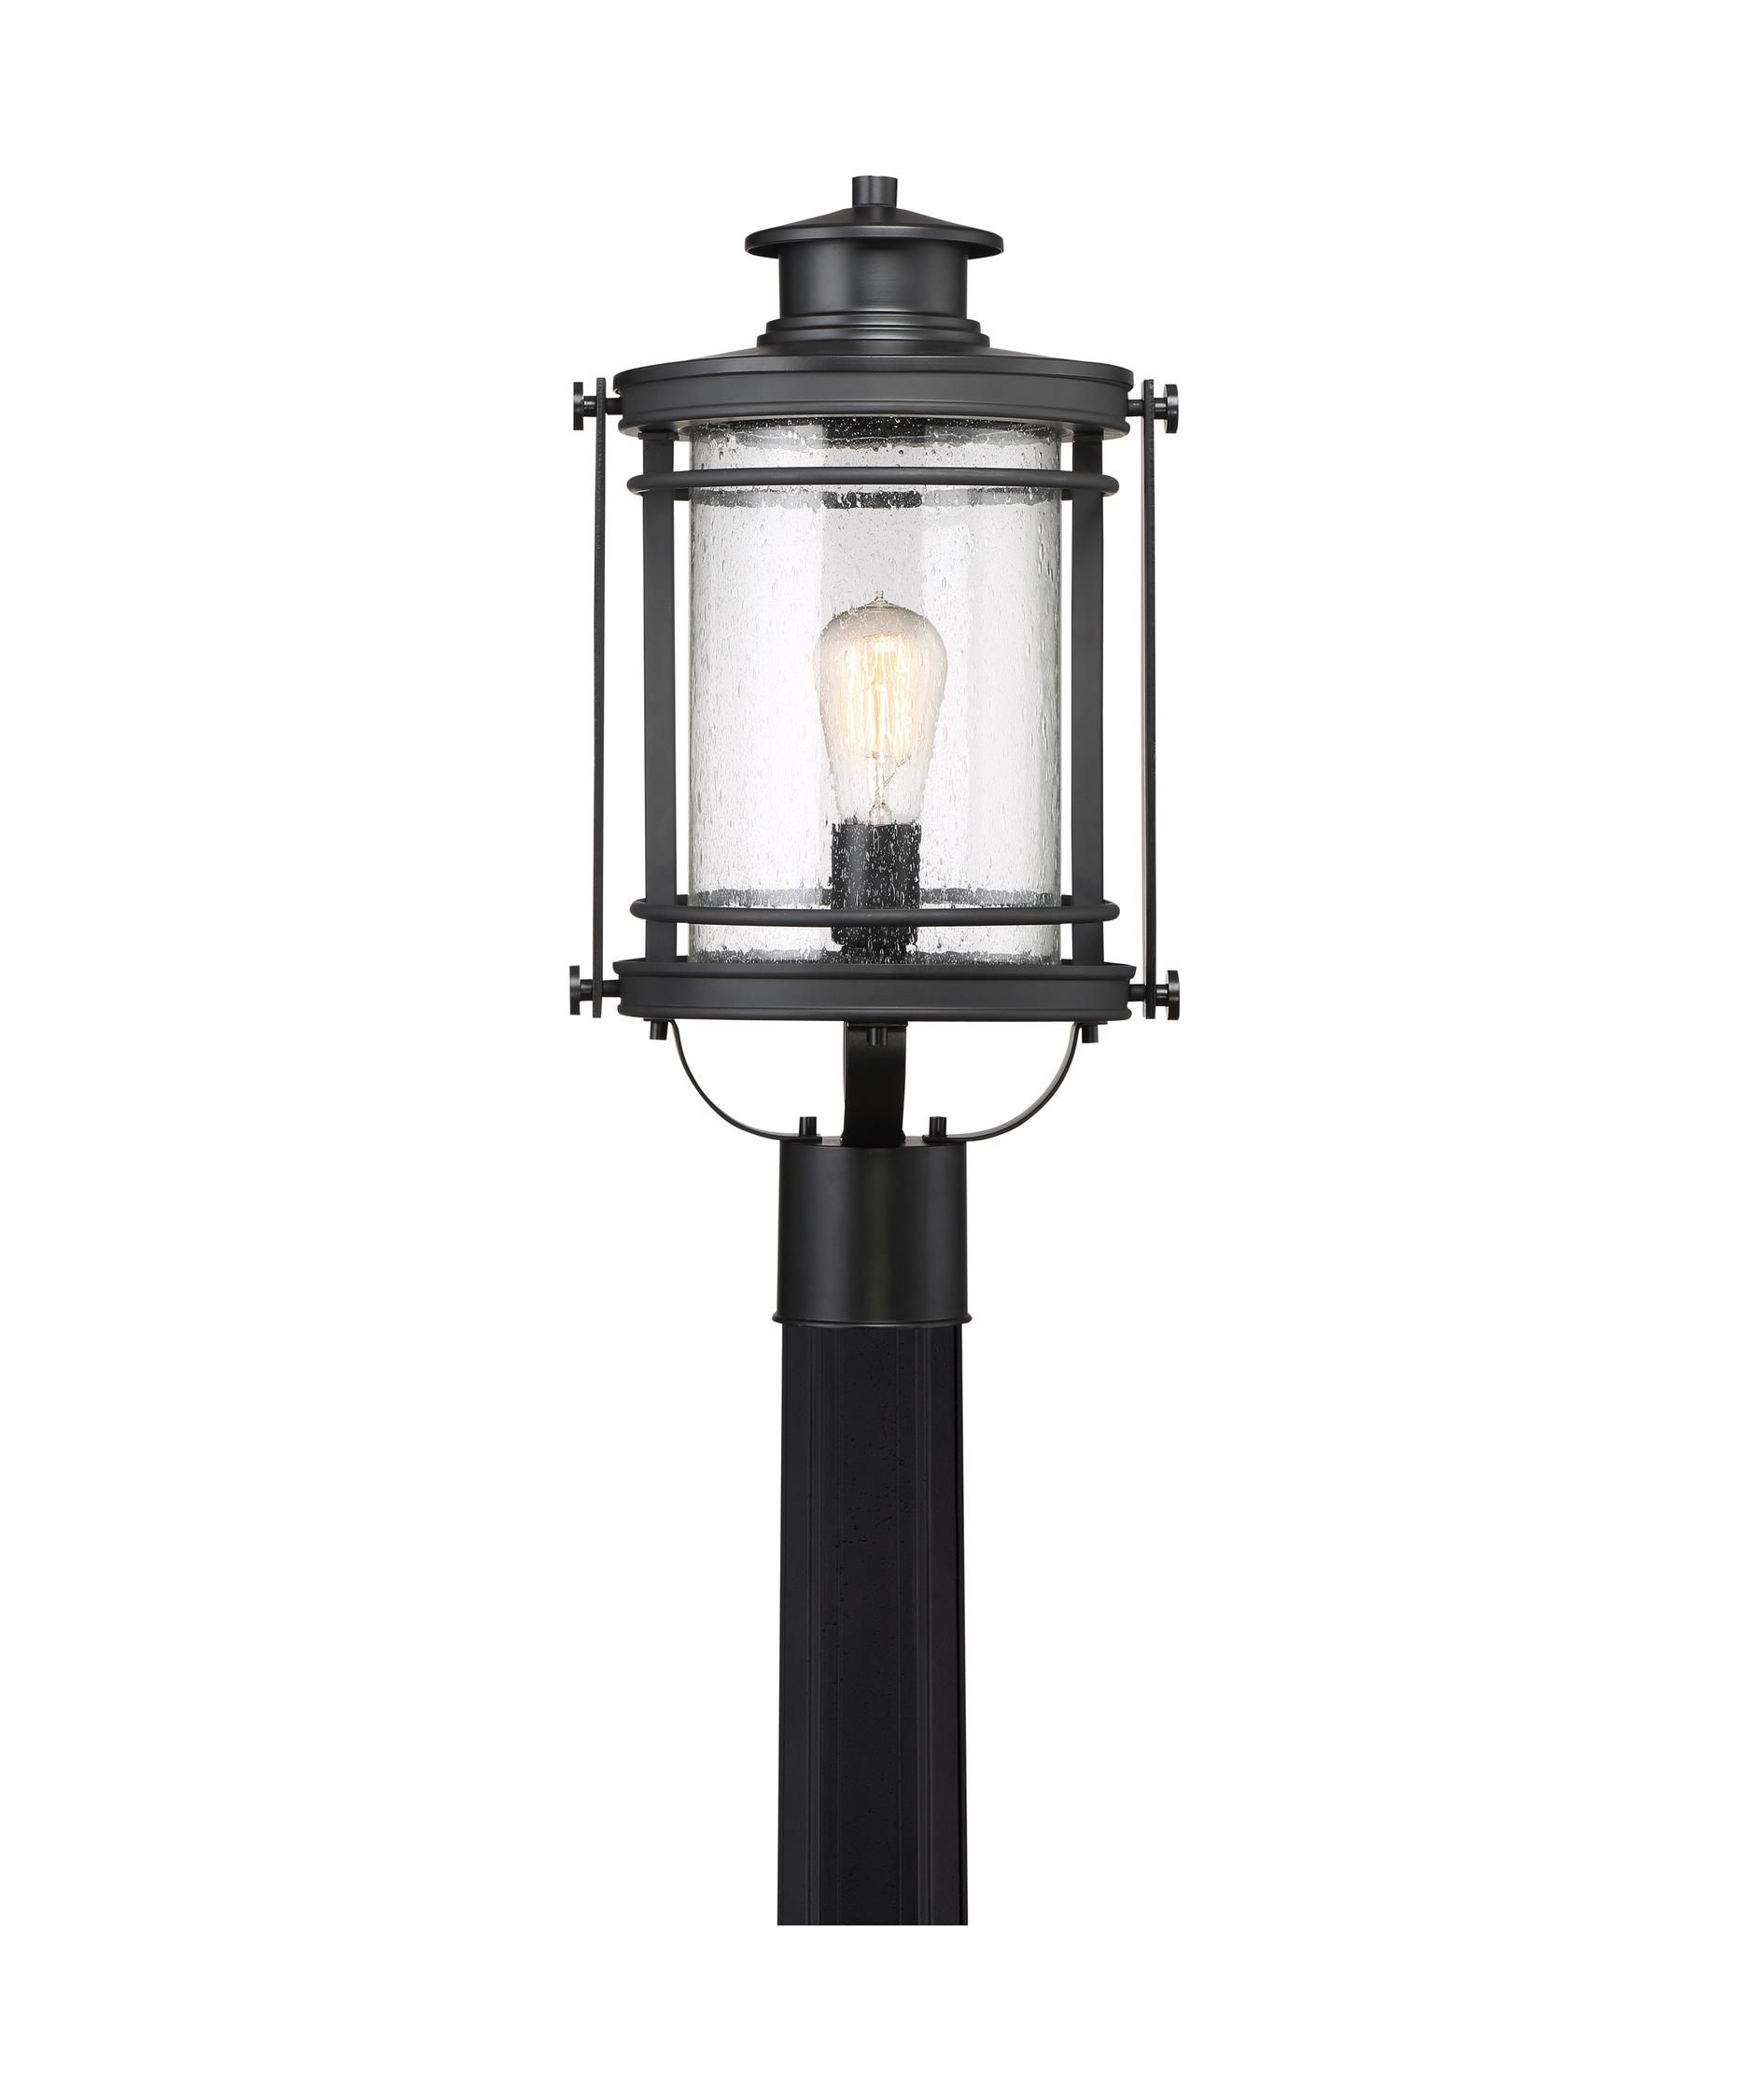 Booker 19 Inch Tall 1 Light Outdoor Post Lamp By Quoizel With Images Outdoor Post Lights Post Lights Lantern Post